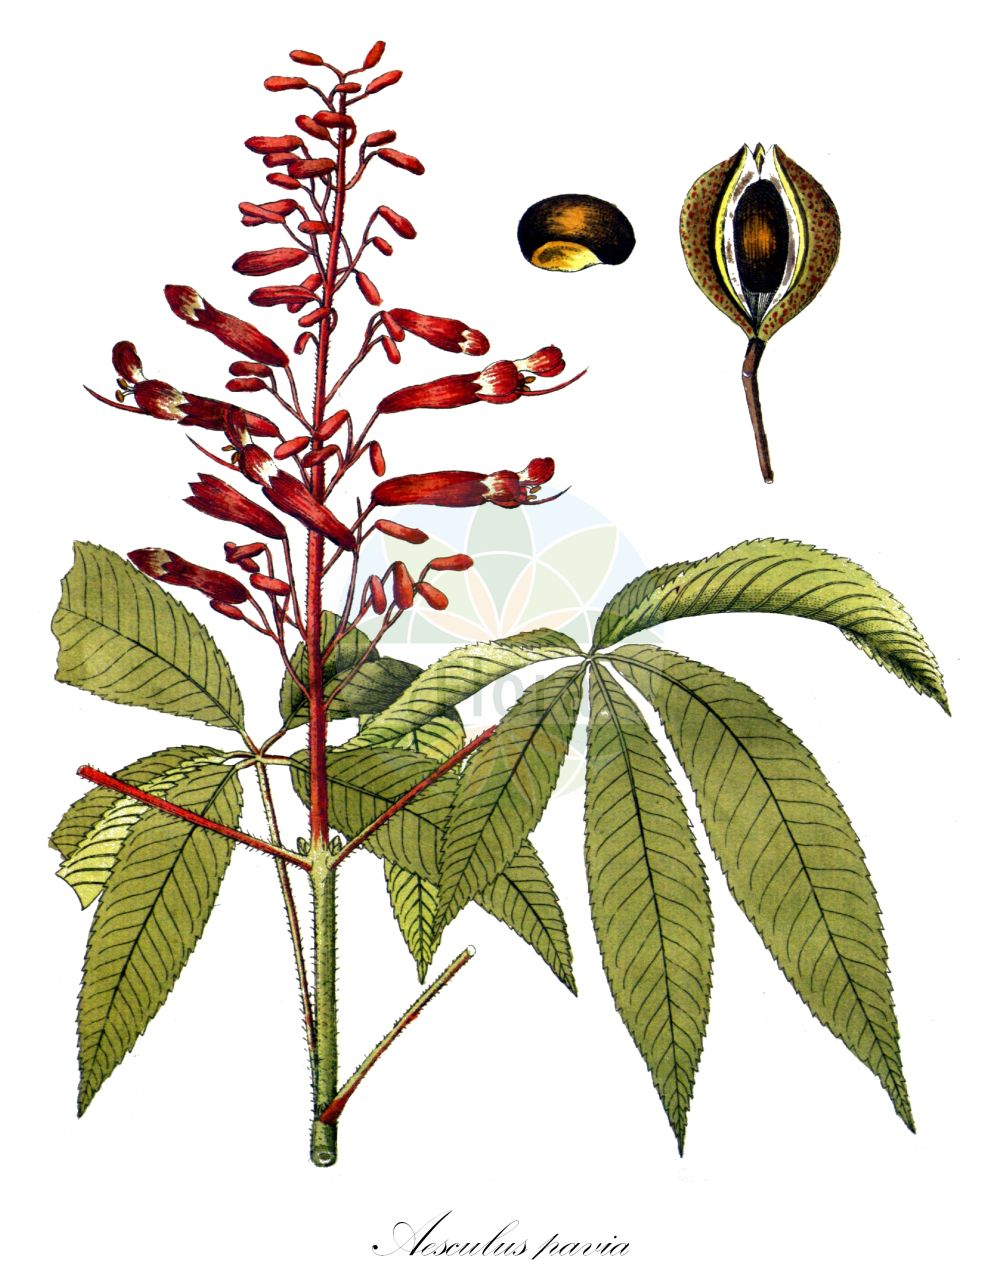 Historische Abbildung von Aesculus pavia. Das Bild zeigt Blatt, Bluete, Frucht und Same. ---- Historical Drawing of Aesculus pavia.The image is showing leaf, flower, fruit and seed. (Aesculus pavia,Aesculus,Rosskastanie,Horse-chestnut,Sapindaceae,Seifenbaumgewaechse,Soapberry family,Blatt,Bluete,Frucht,Same,leaf,flower,fruit,seed,Vietz (1800-1822))